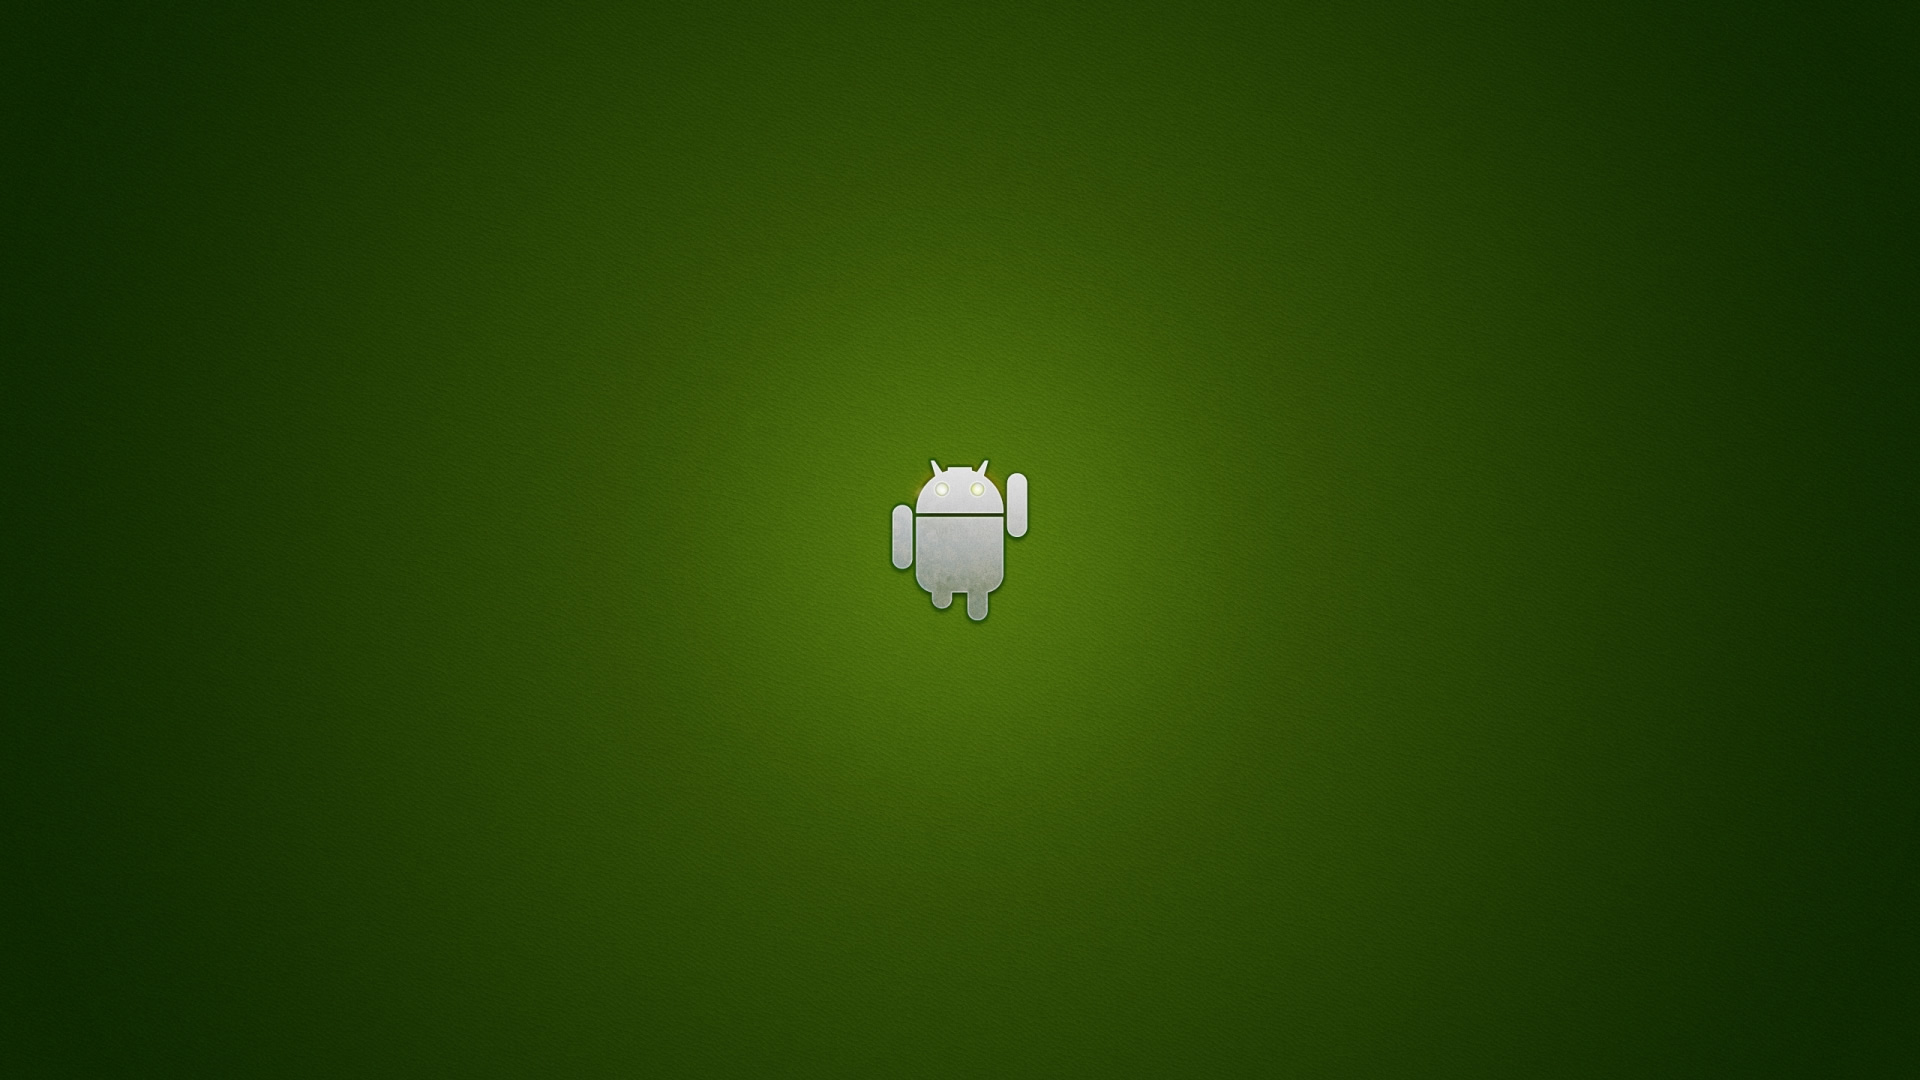 Wallpaper For Android Tablets